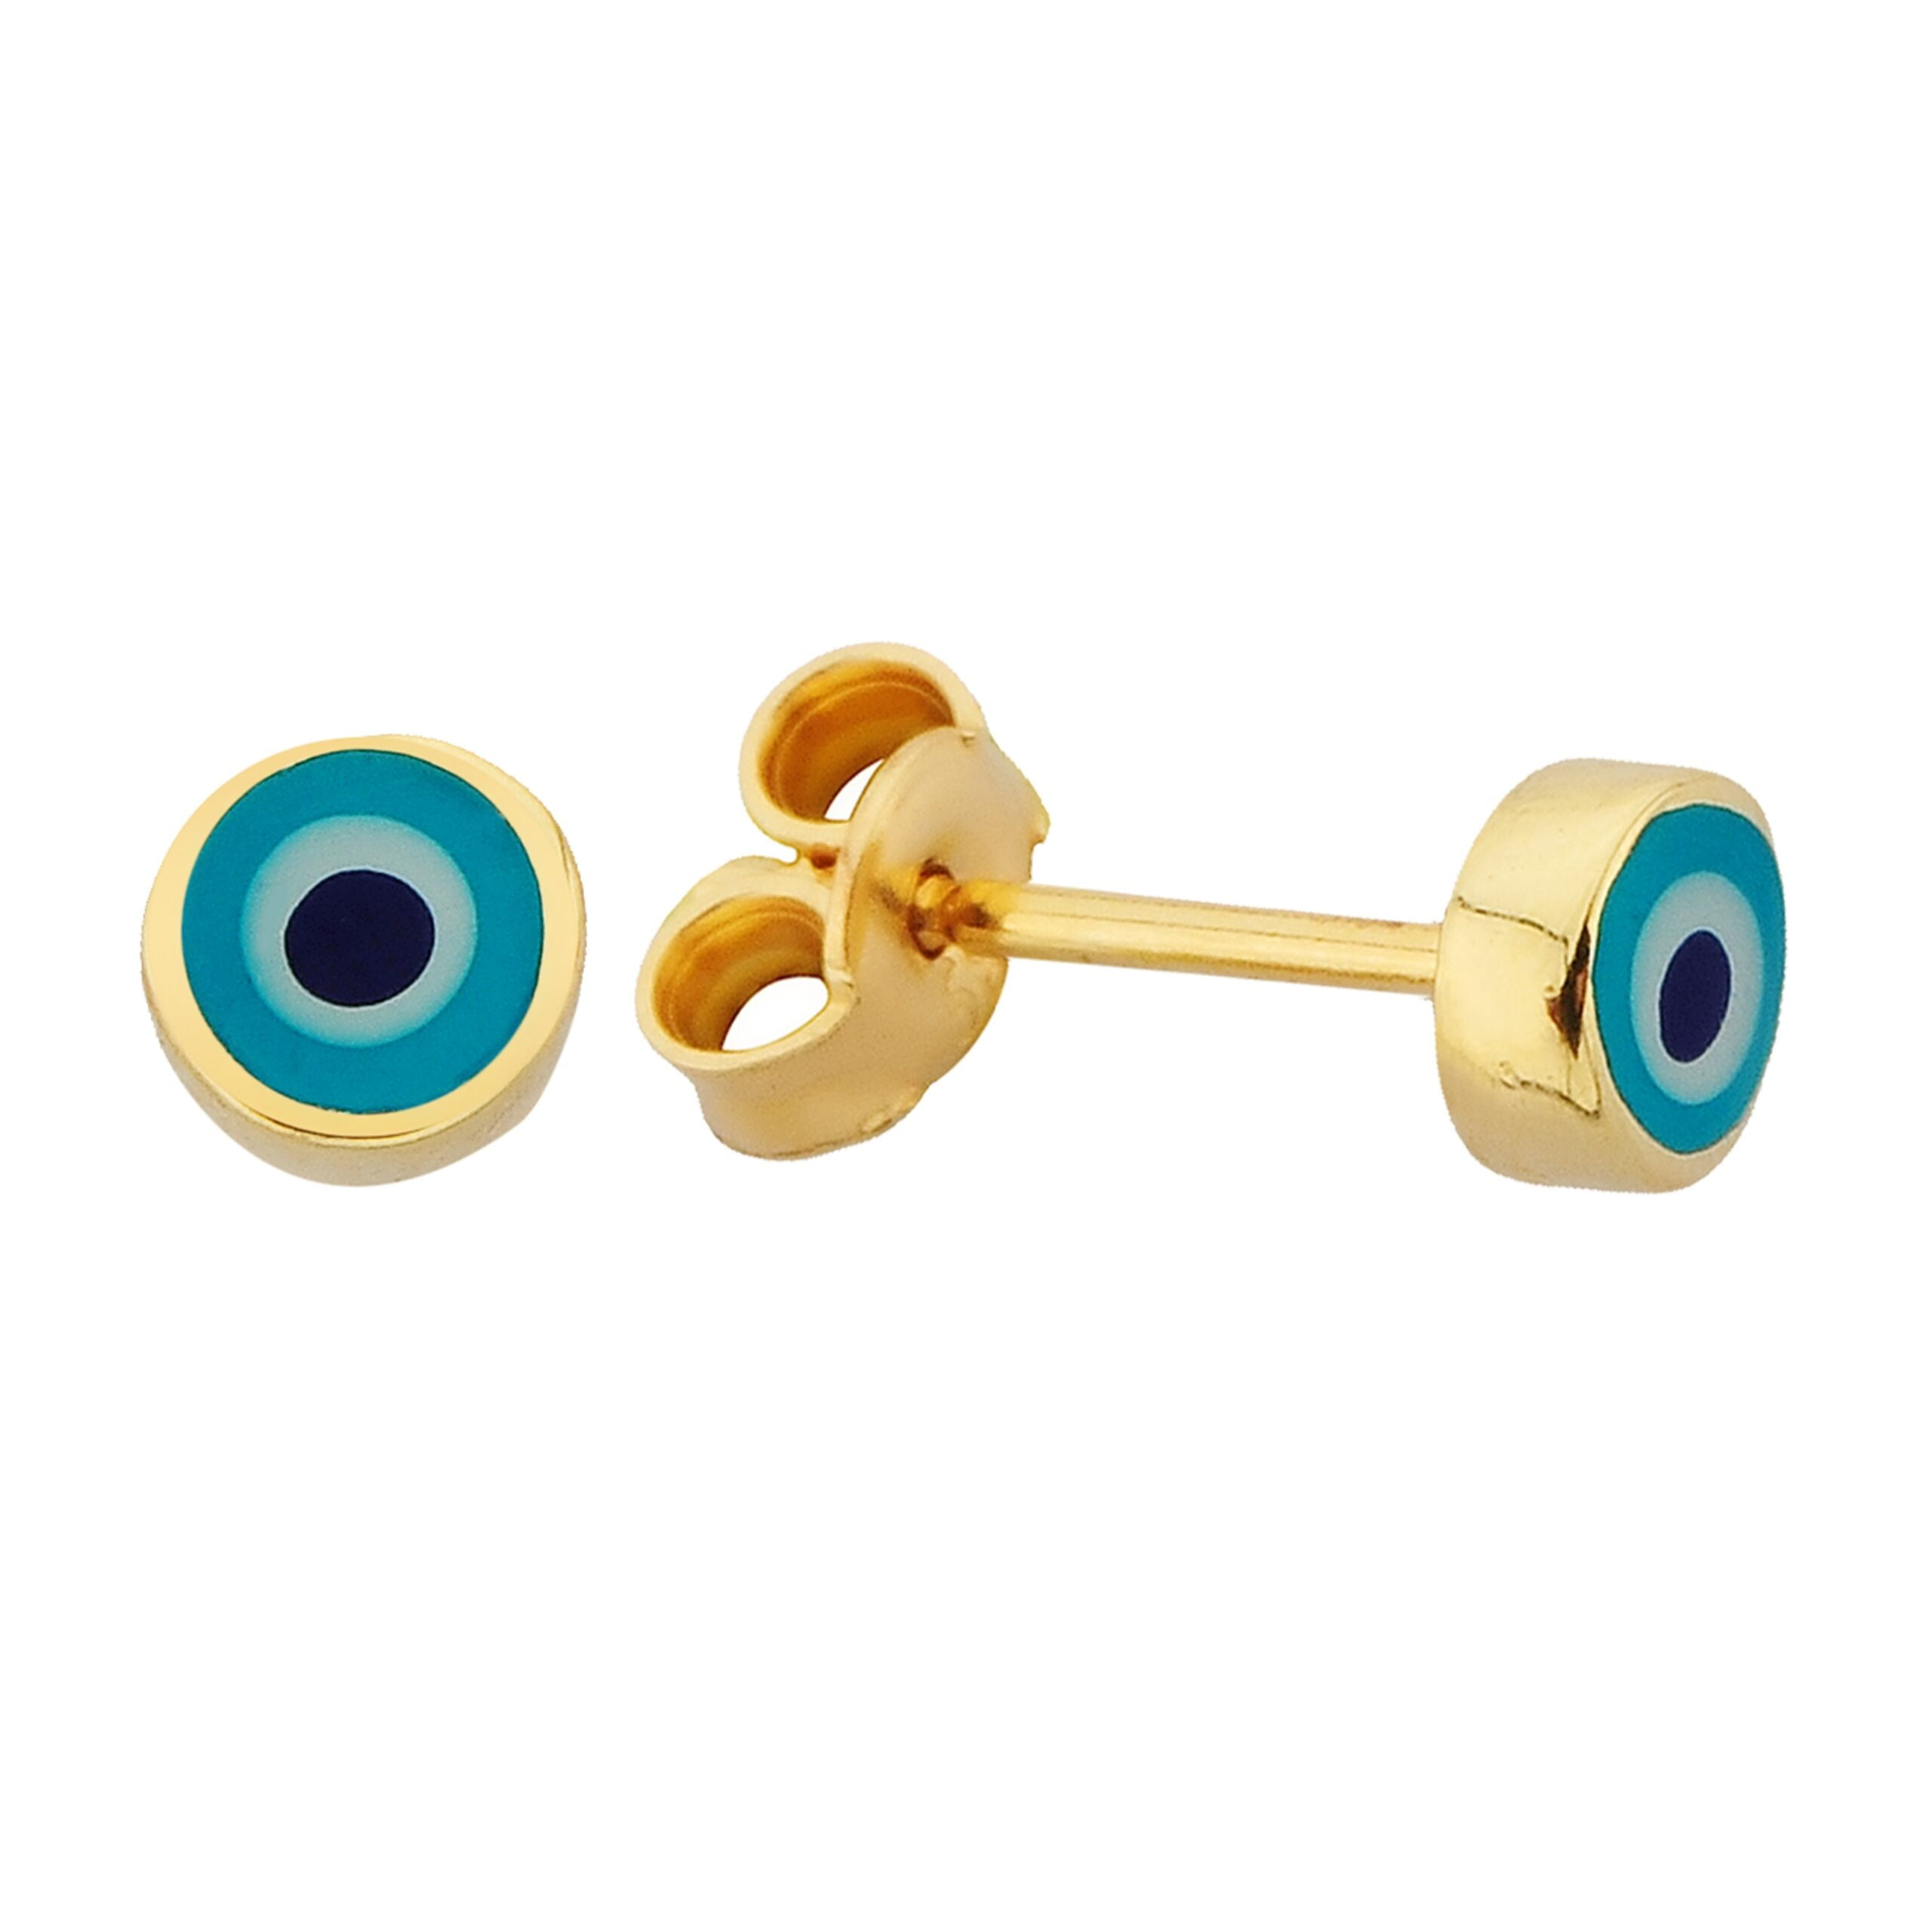 Eye Stud Earrings Lucky Luck Nazar Protection For Women Jewelry 14K Yellow Gold Tiny Charm Dainty Turquoise or Navy Blue Brithday gift christmas turkish nazar protection greek luck good luck